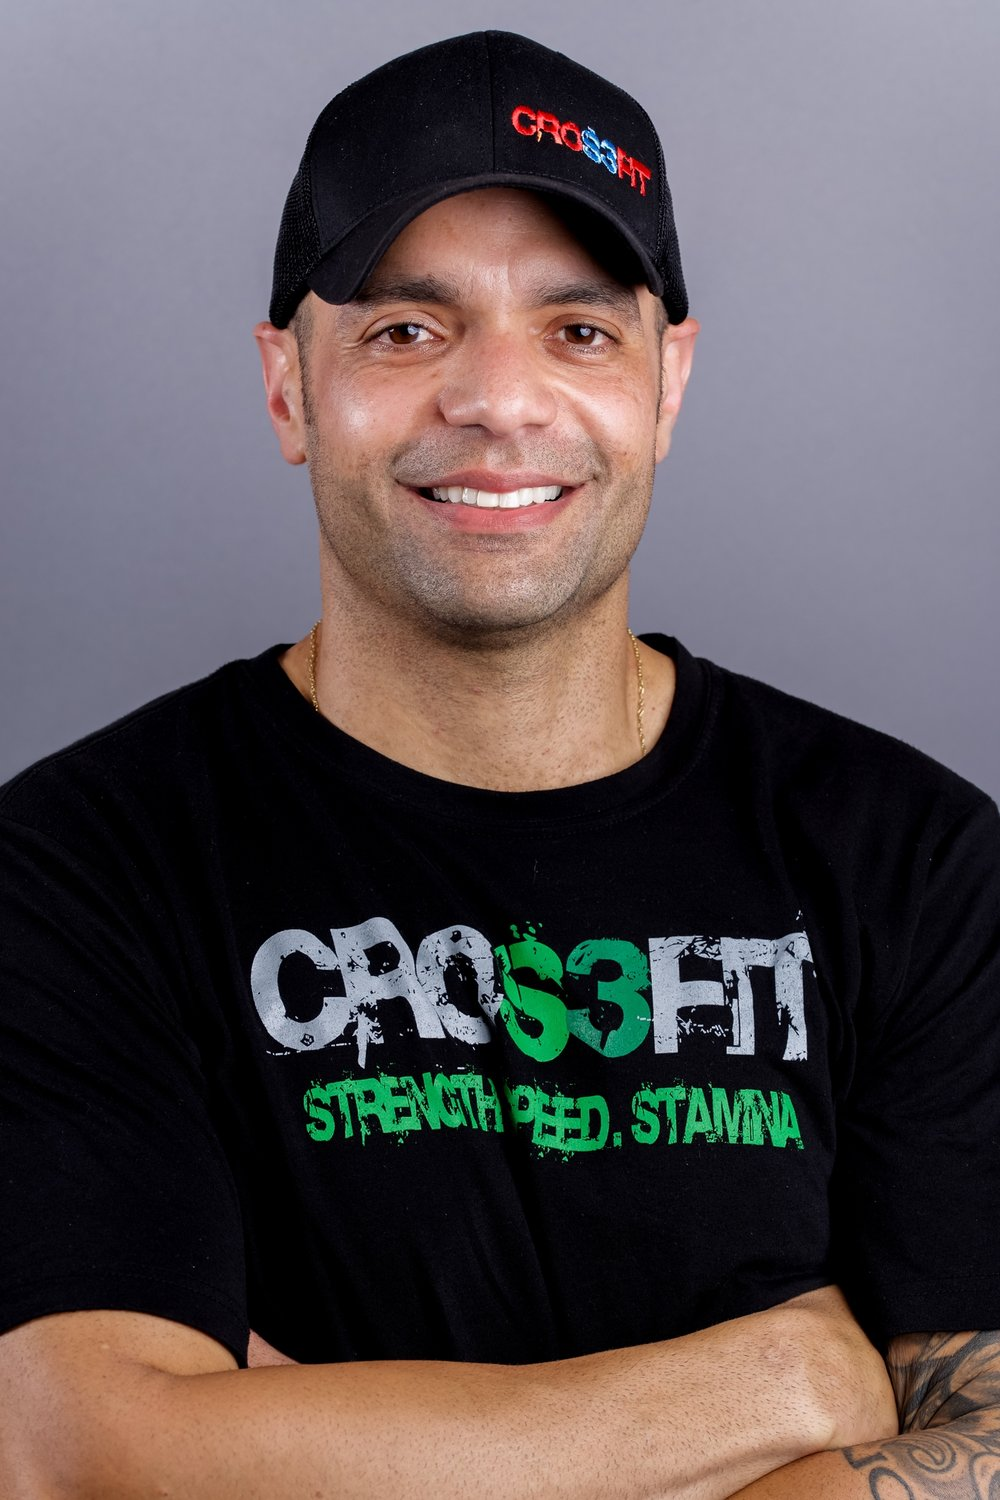 Coach Michael   Specializations  CrossFit Level 2 Trainer CrossFit Endurance-Running Trainer CrossFit Kids Trainer CrossFit Defense CrossFit Mobility CrossFit Rowing  Michael is a 10 year Army veteran with the 82nd Airborne Division and four-time Iraq Campaign veteran. He is currently a Charlotte Firefighter/EMT and Tactical Medic who enjoys bringing a no-nonsense approach to his coaching at S3.